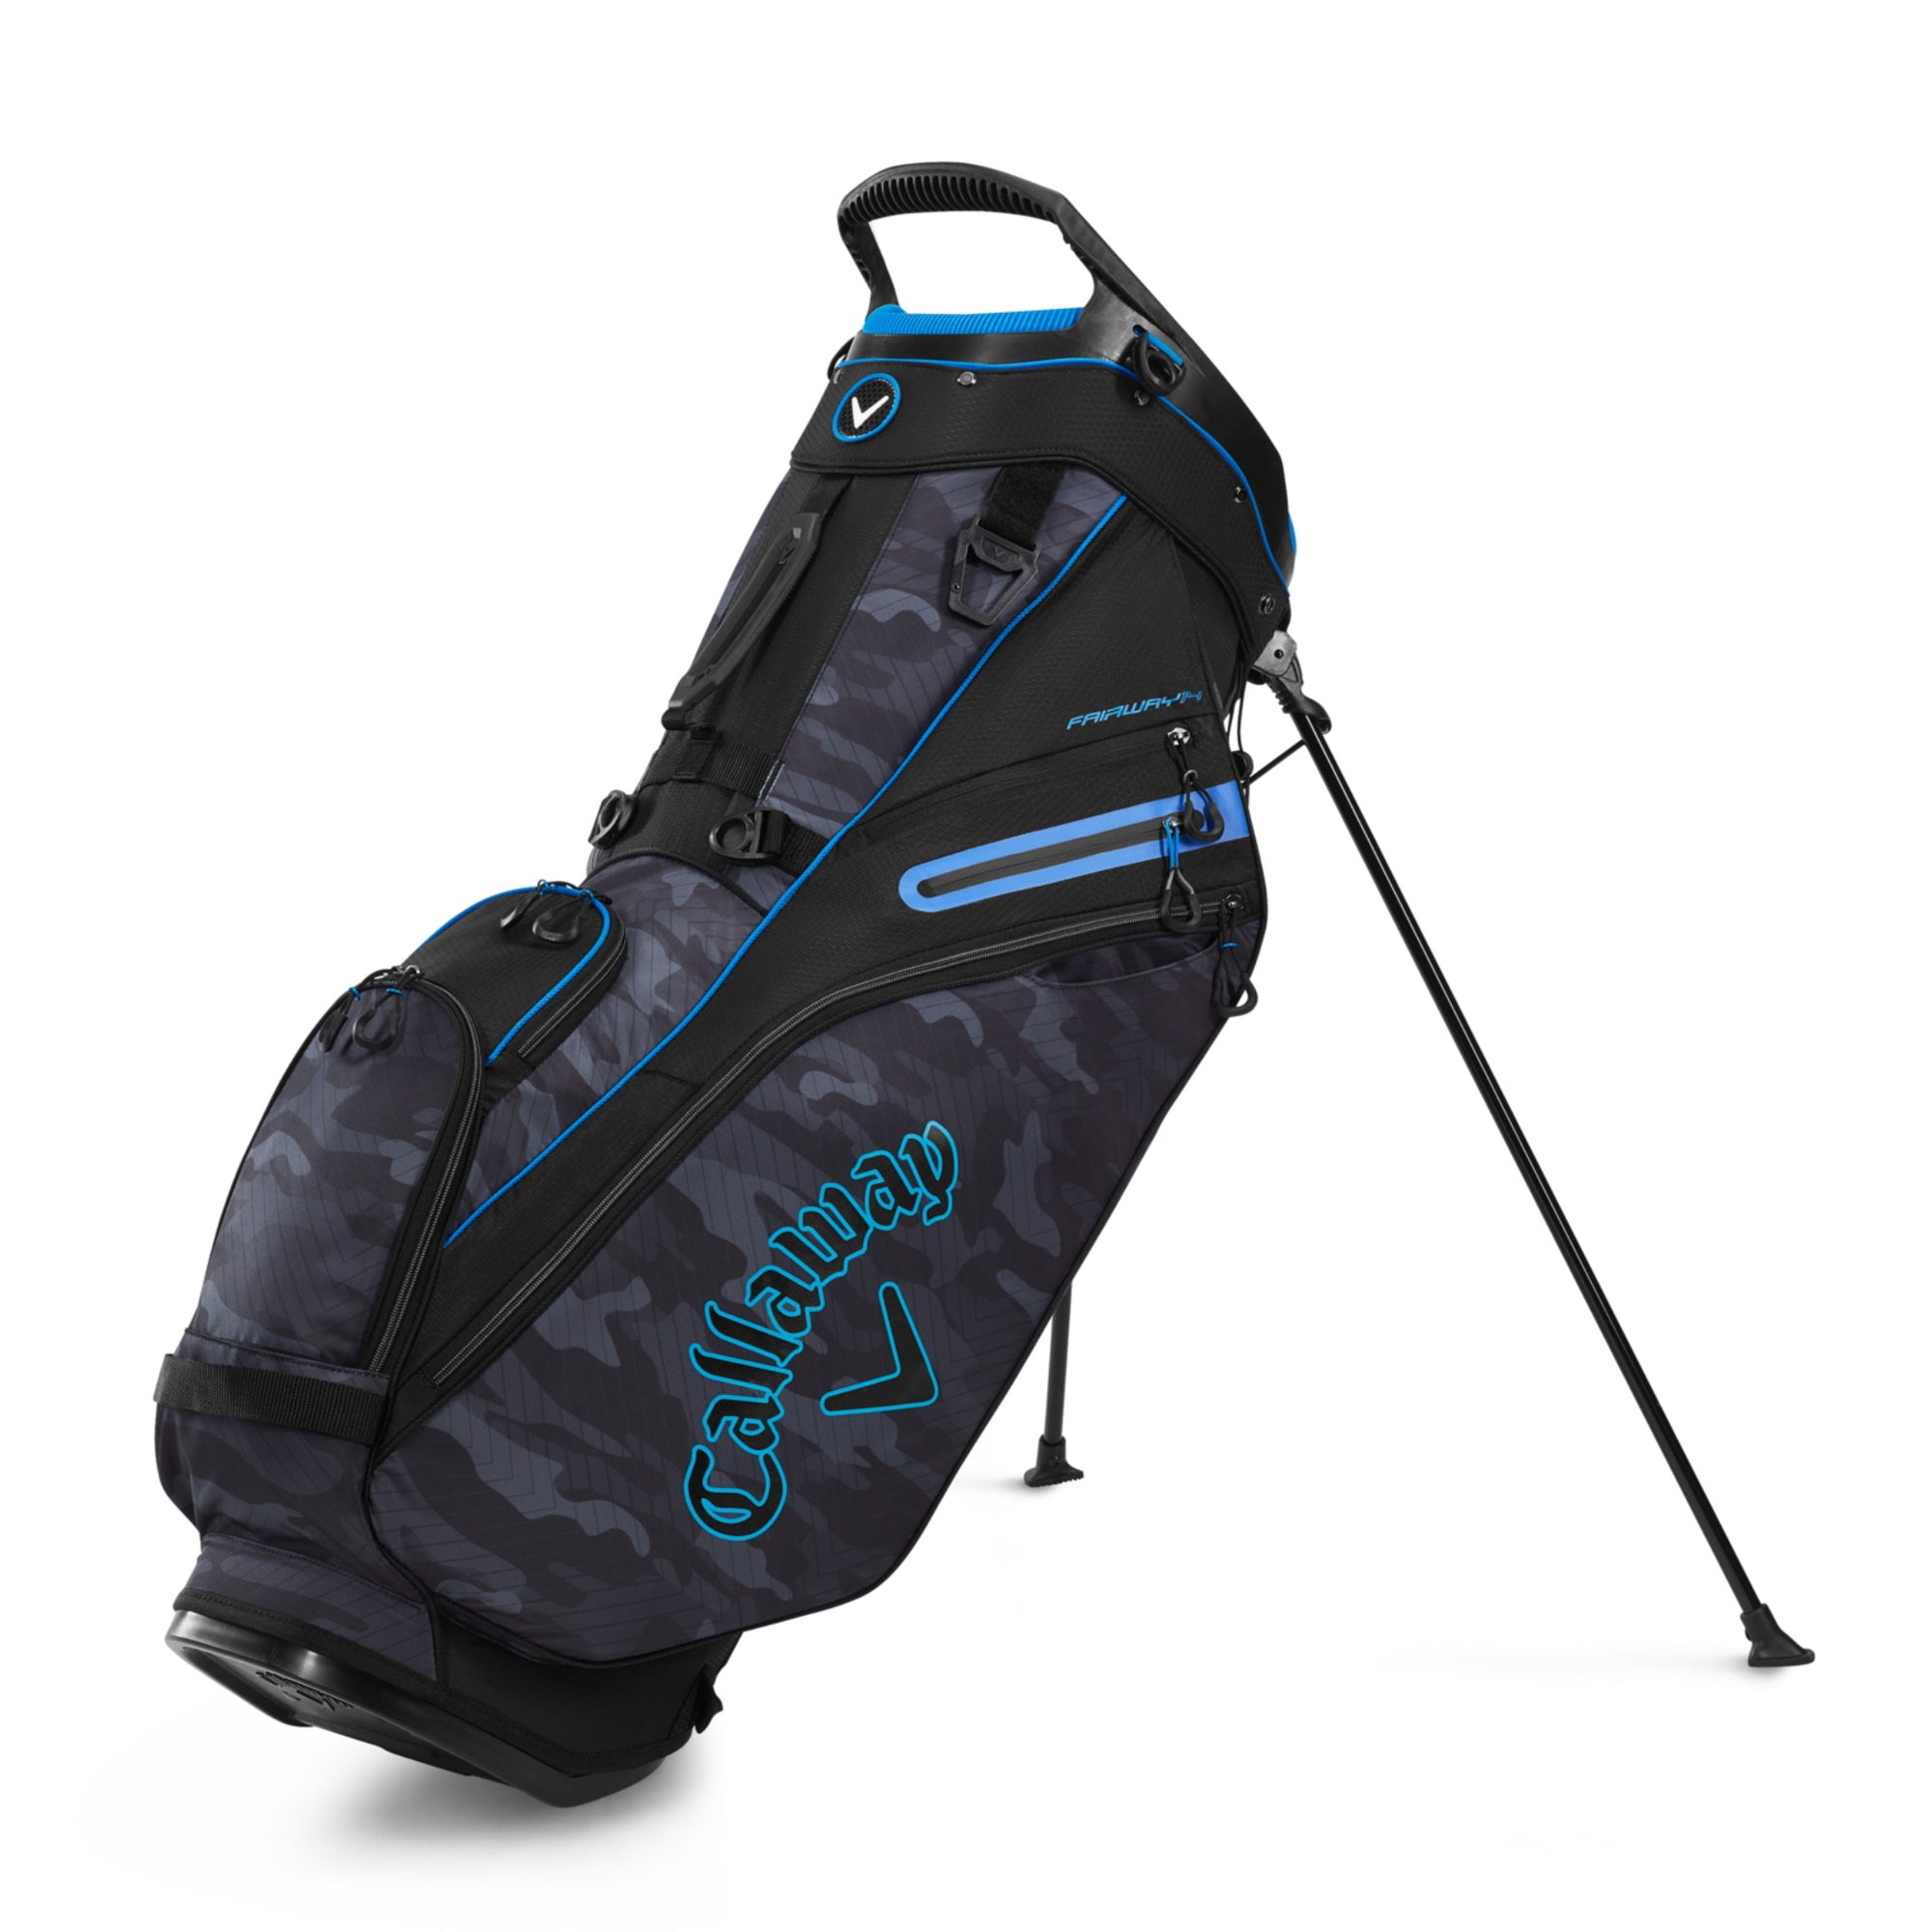 Callaway 2020 Fairway 14 Stand Golf Bag